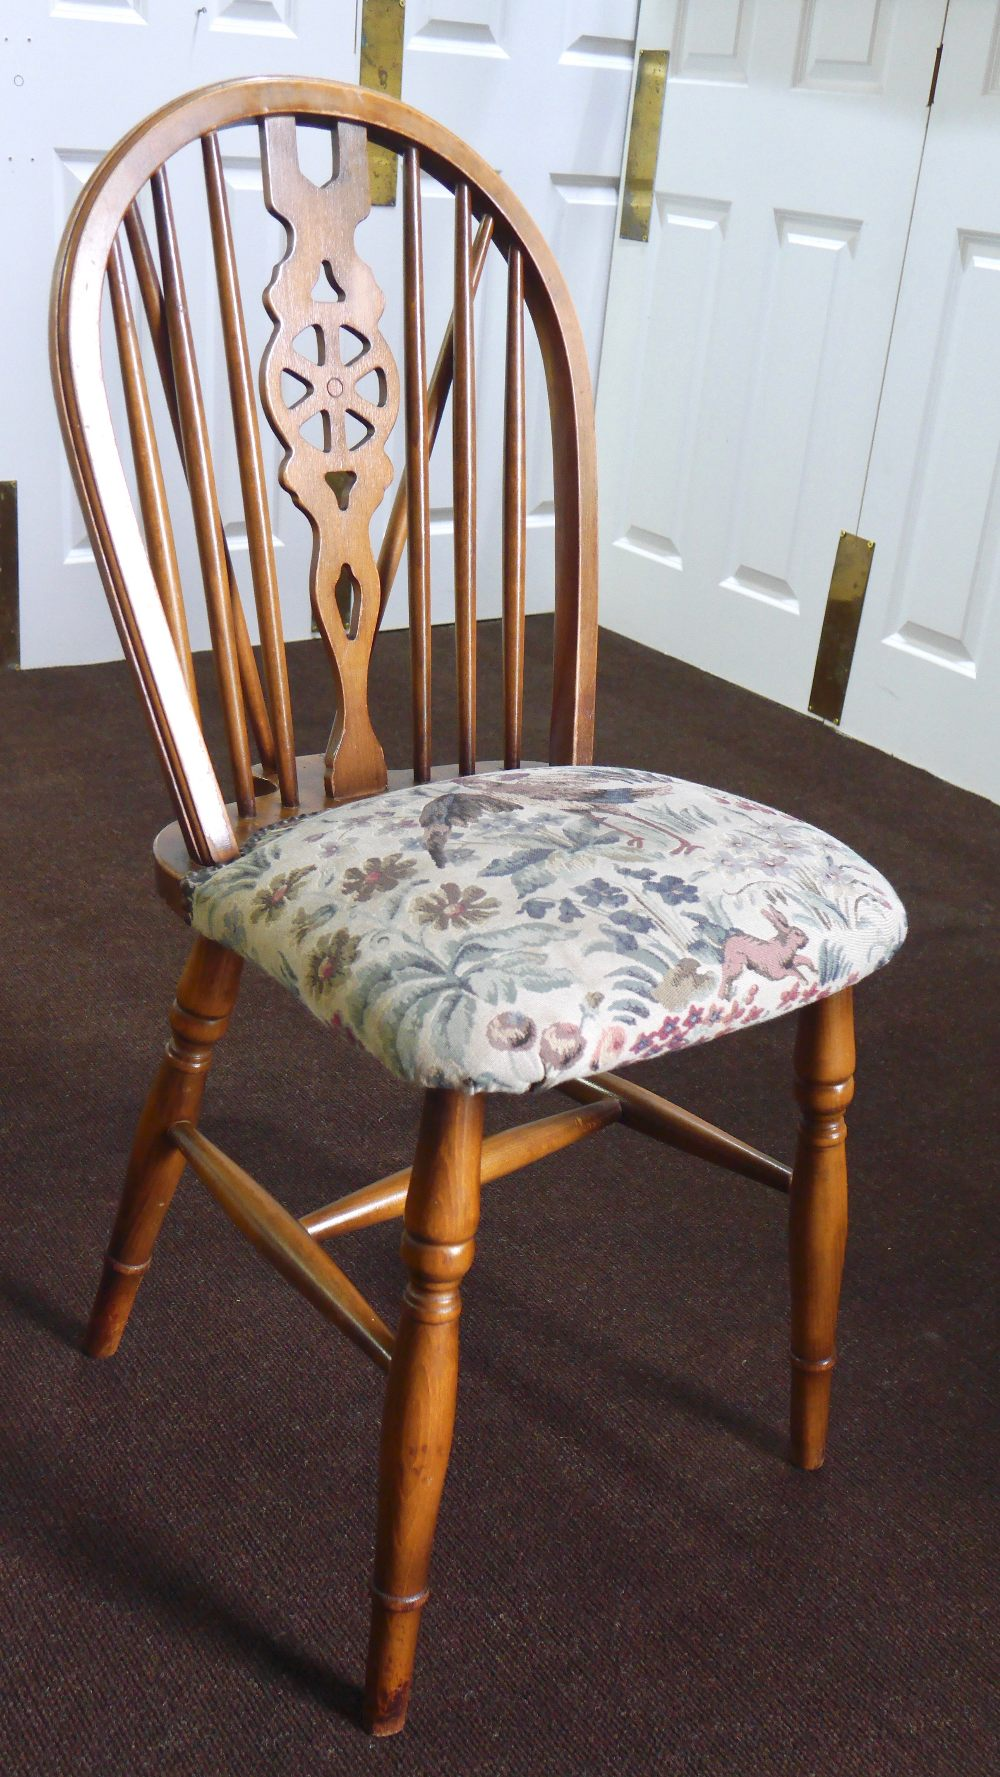 Lot 19 - Set of 4 Vintage Windsor Wheelback Dining Chairs